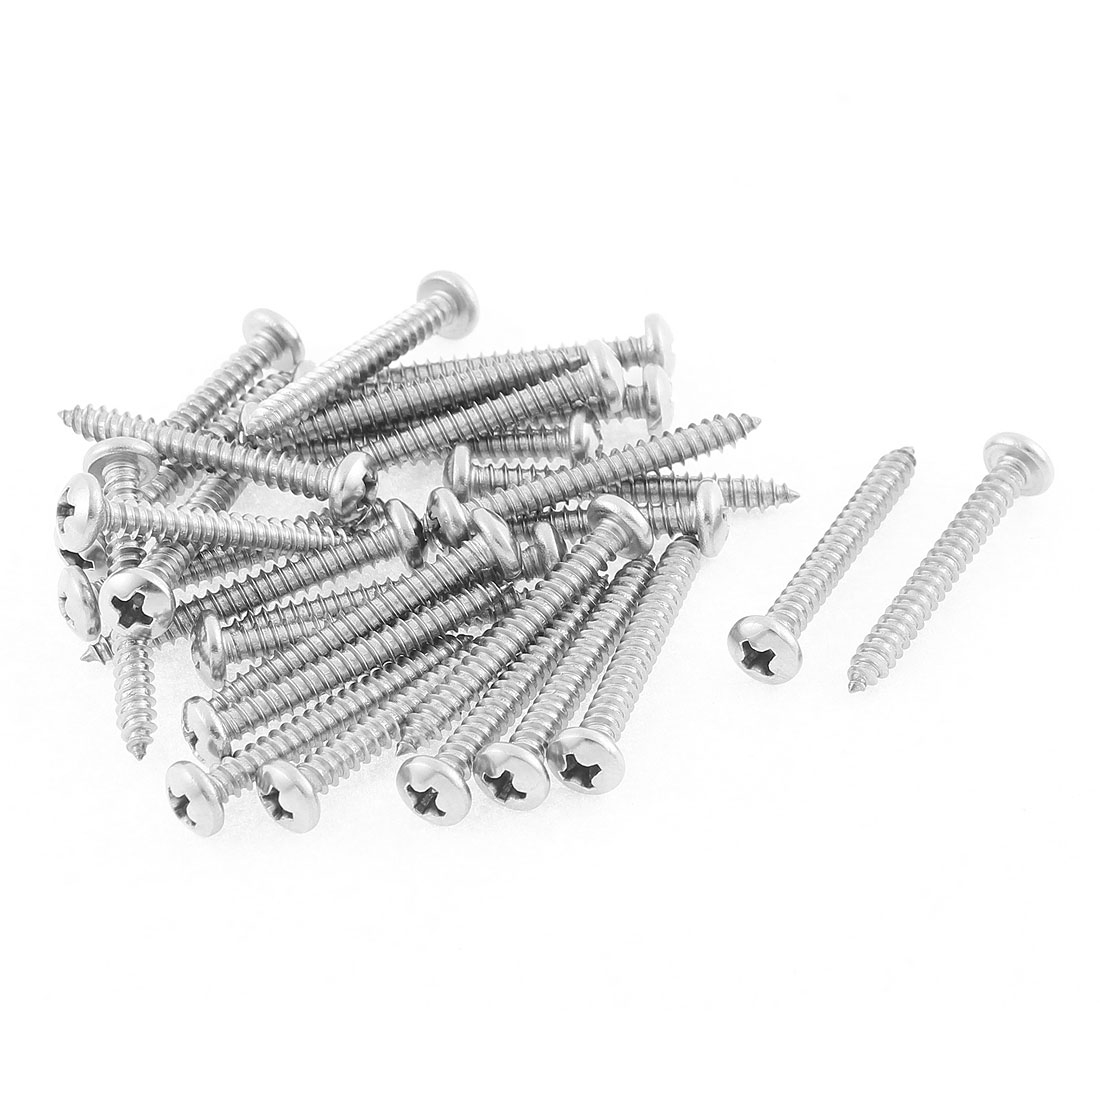 30 Pcs 3.9mmx32mm Stainless Steel Phillips Round Head Sheet Self Tapping Screws